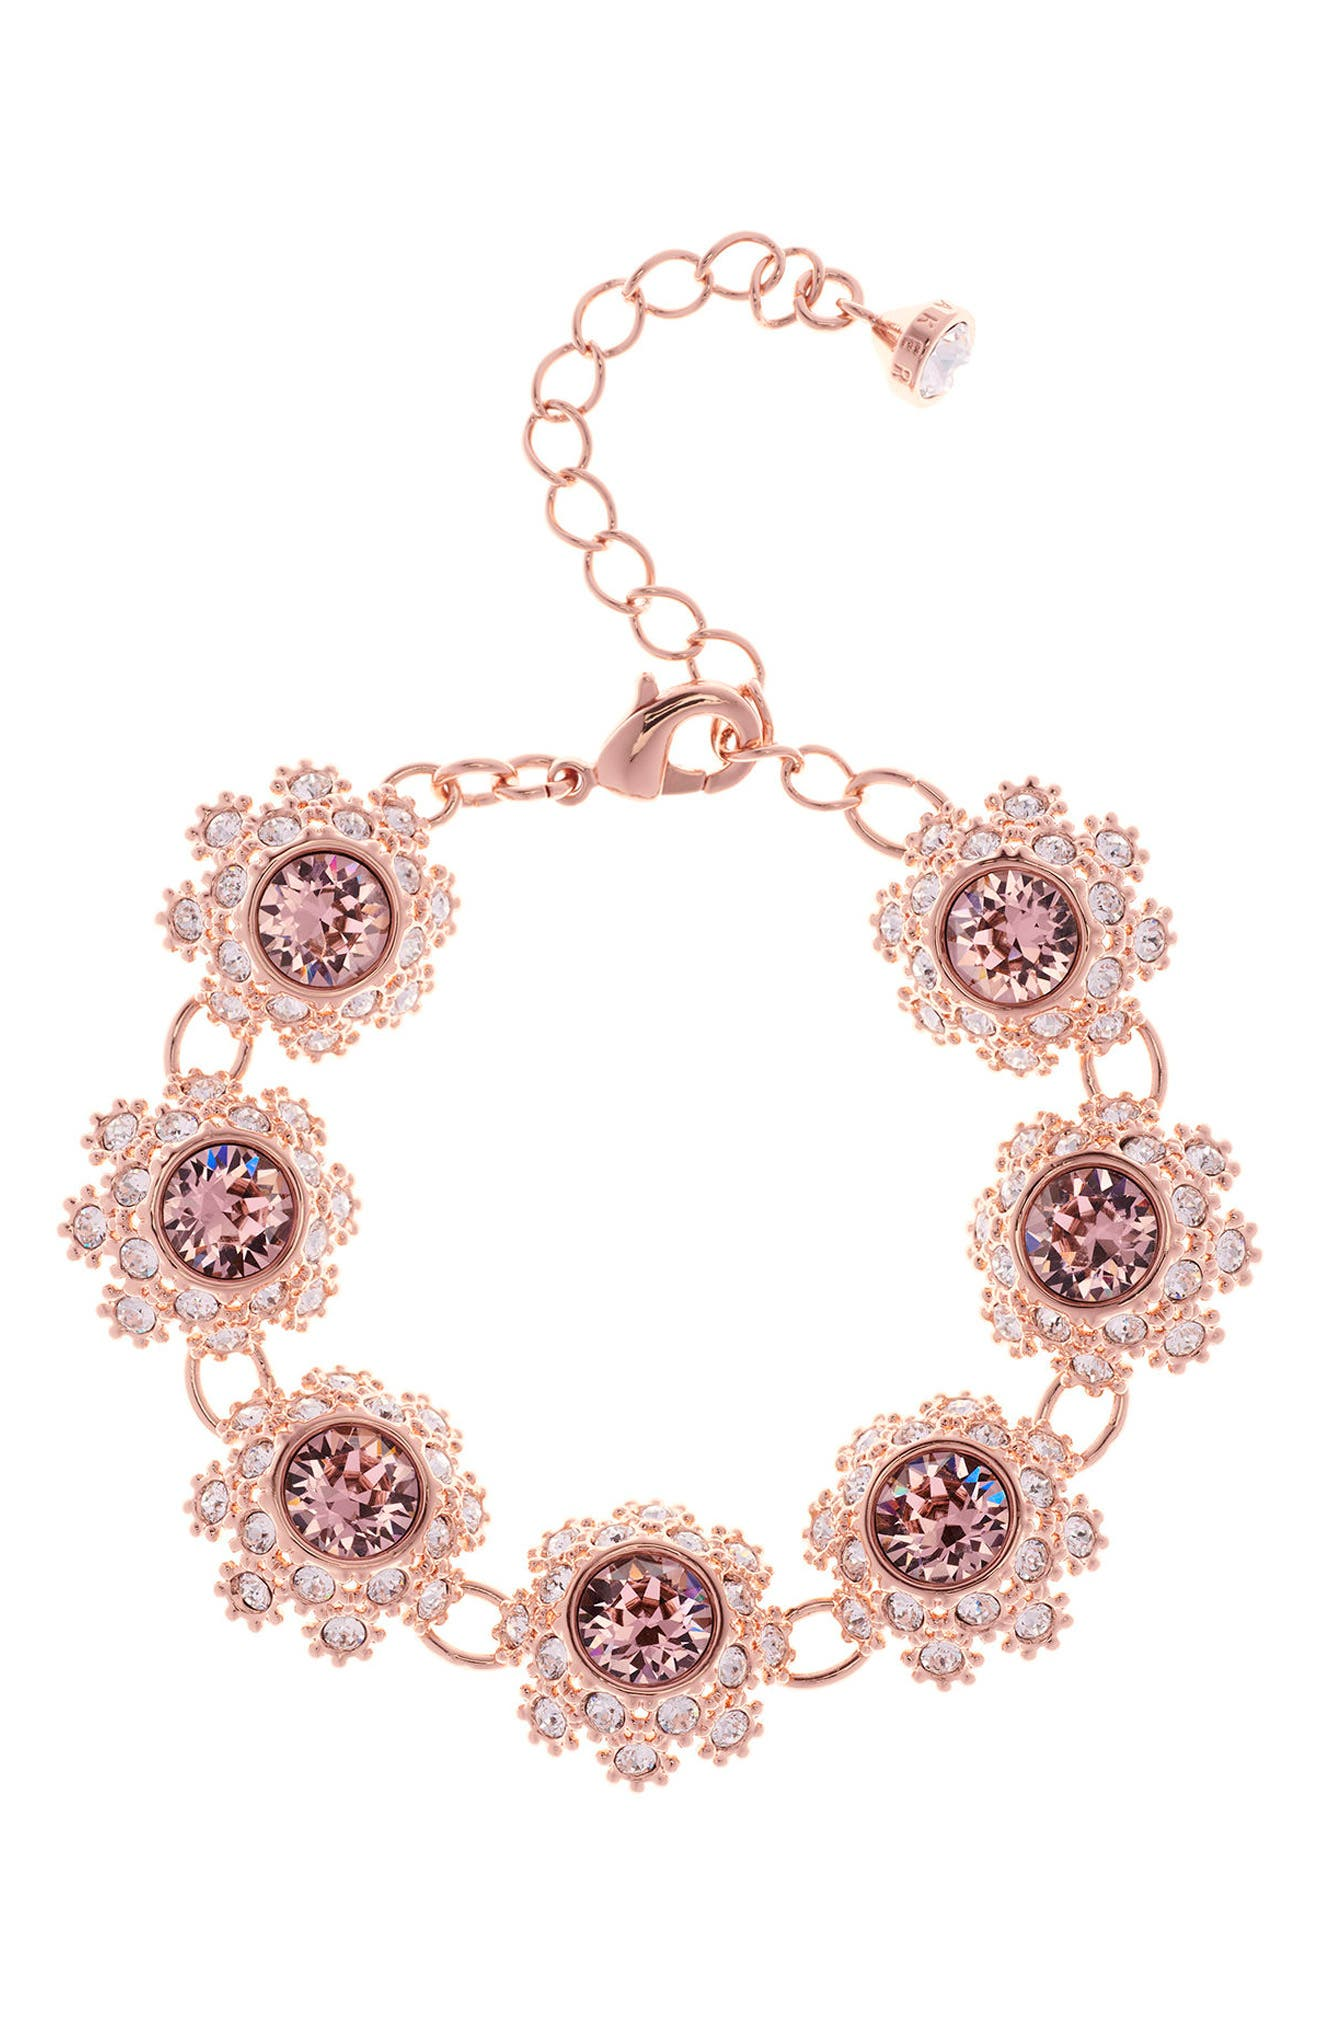 Crystal Daisy Lace Station Bracelet,                             Main thumbnail 1, color,                             Pink